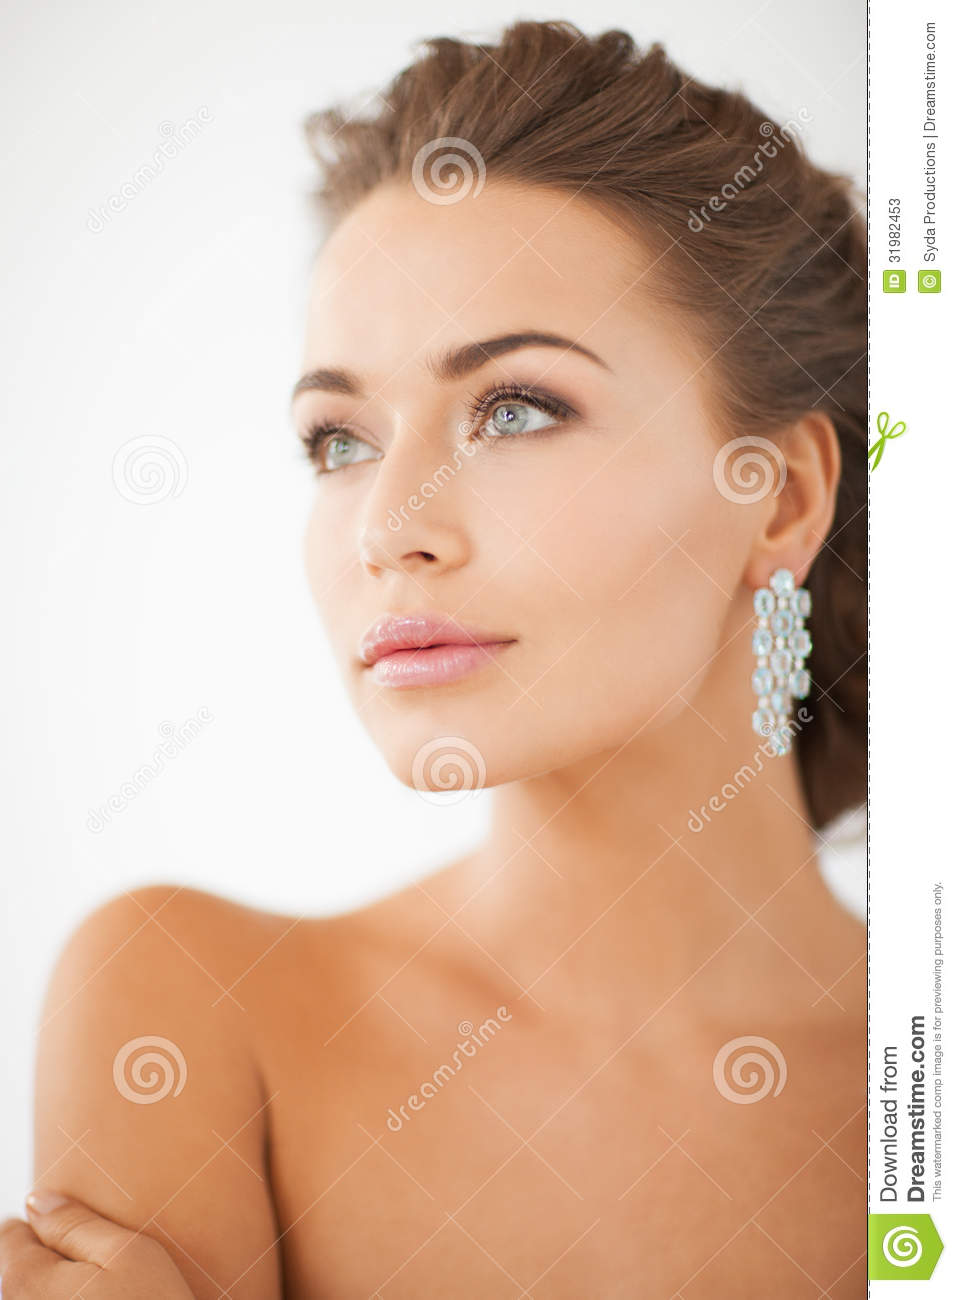 Cool Woman Wearing Shiny Diamond Earrings Royalty Free Stock